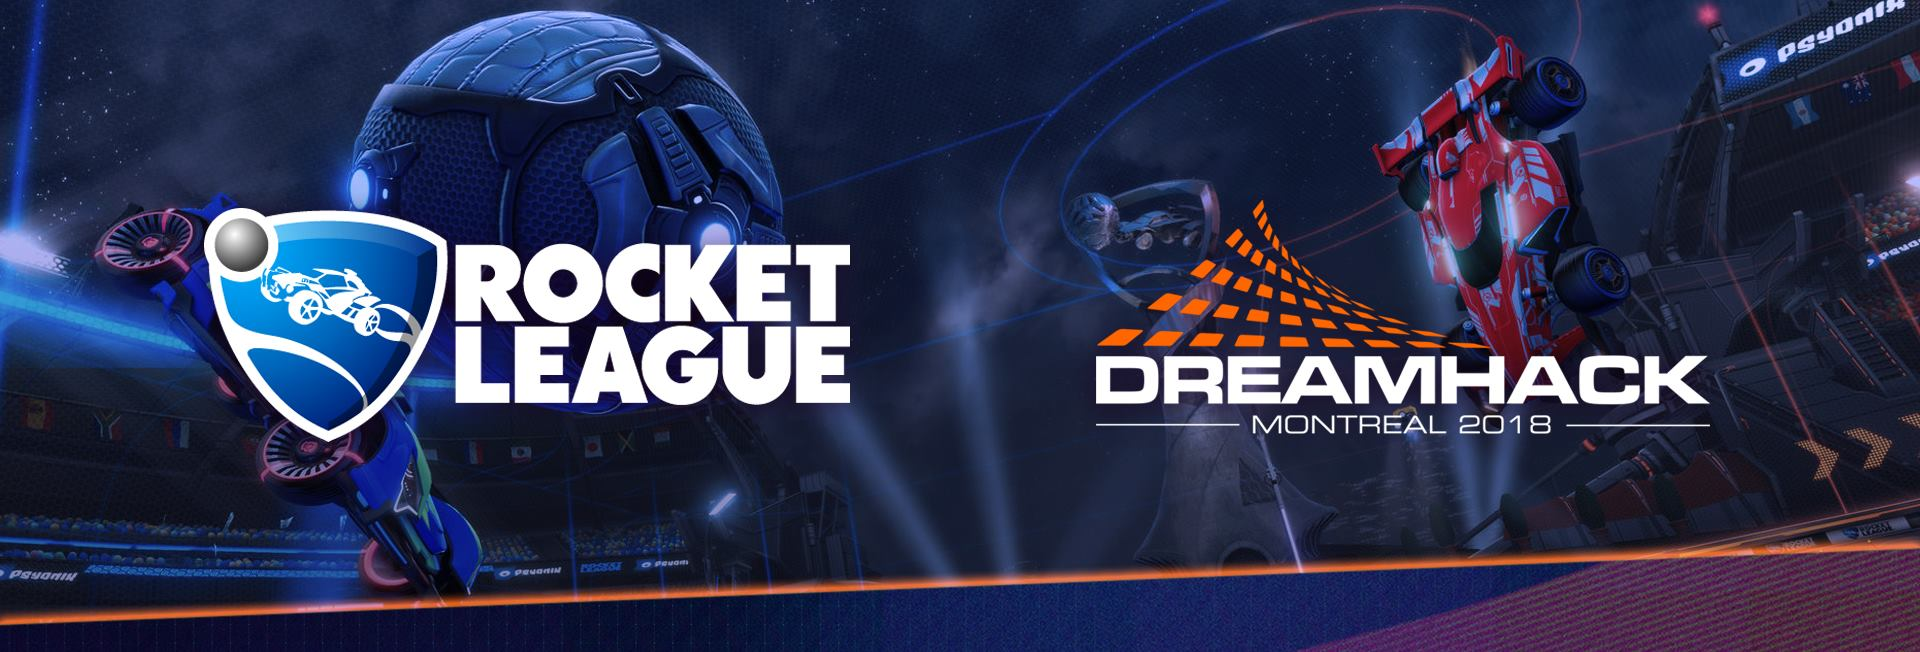 Dreamhack Montreal 2018 - Rocket League